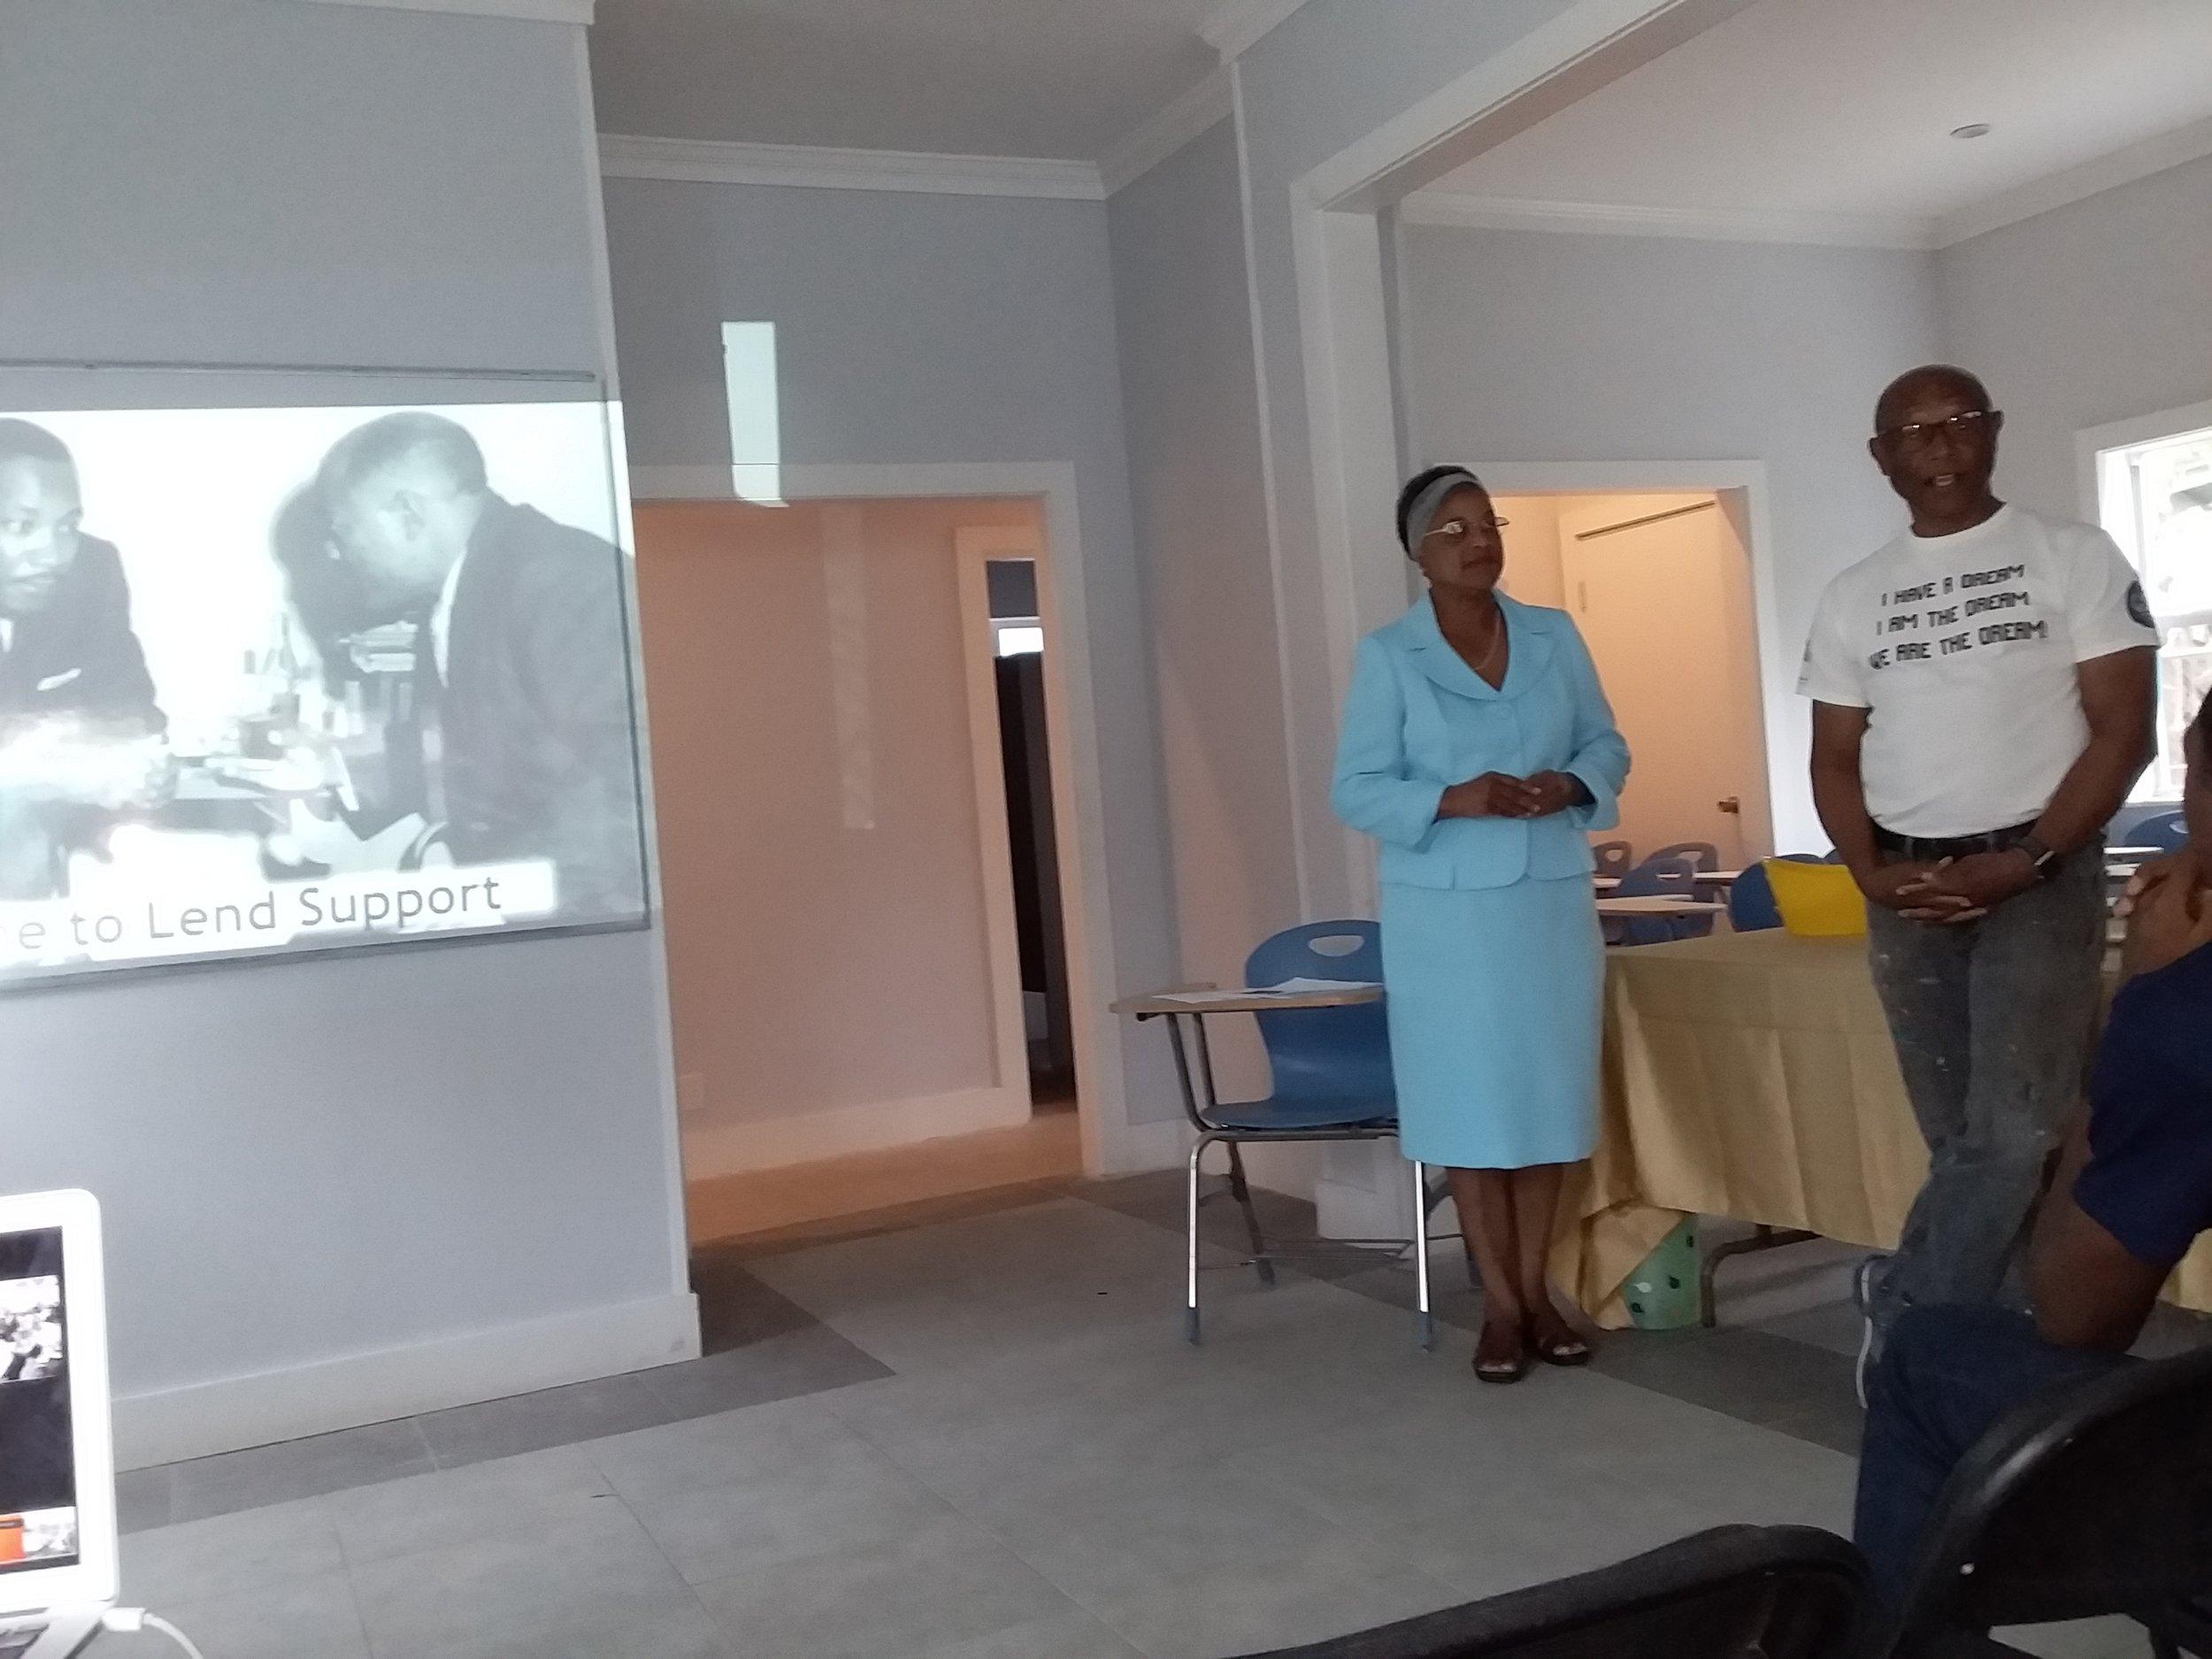 Rosalie Fawkes and Antonius Roberts at the Martin Luther King presentation at the LAHB Center. Photography courtesy of Dede Brown.